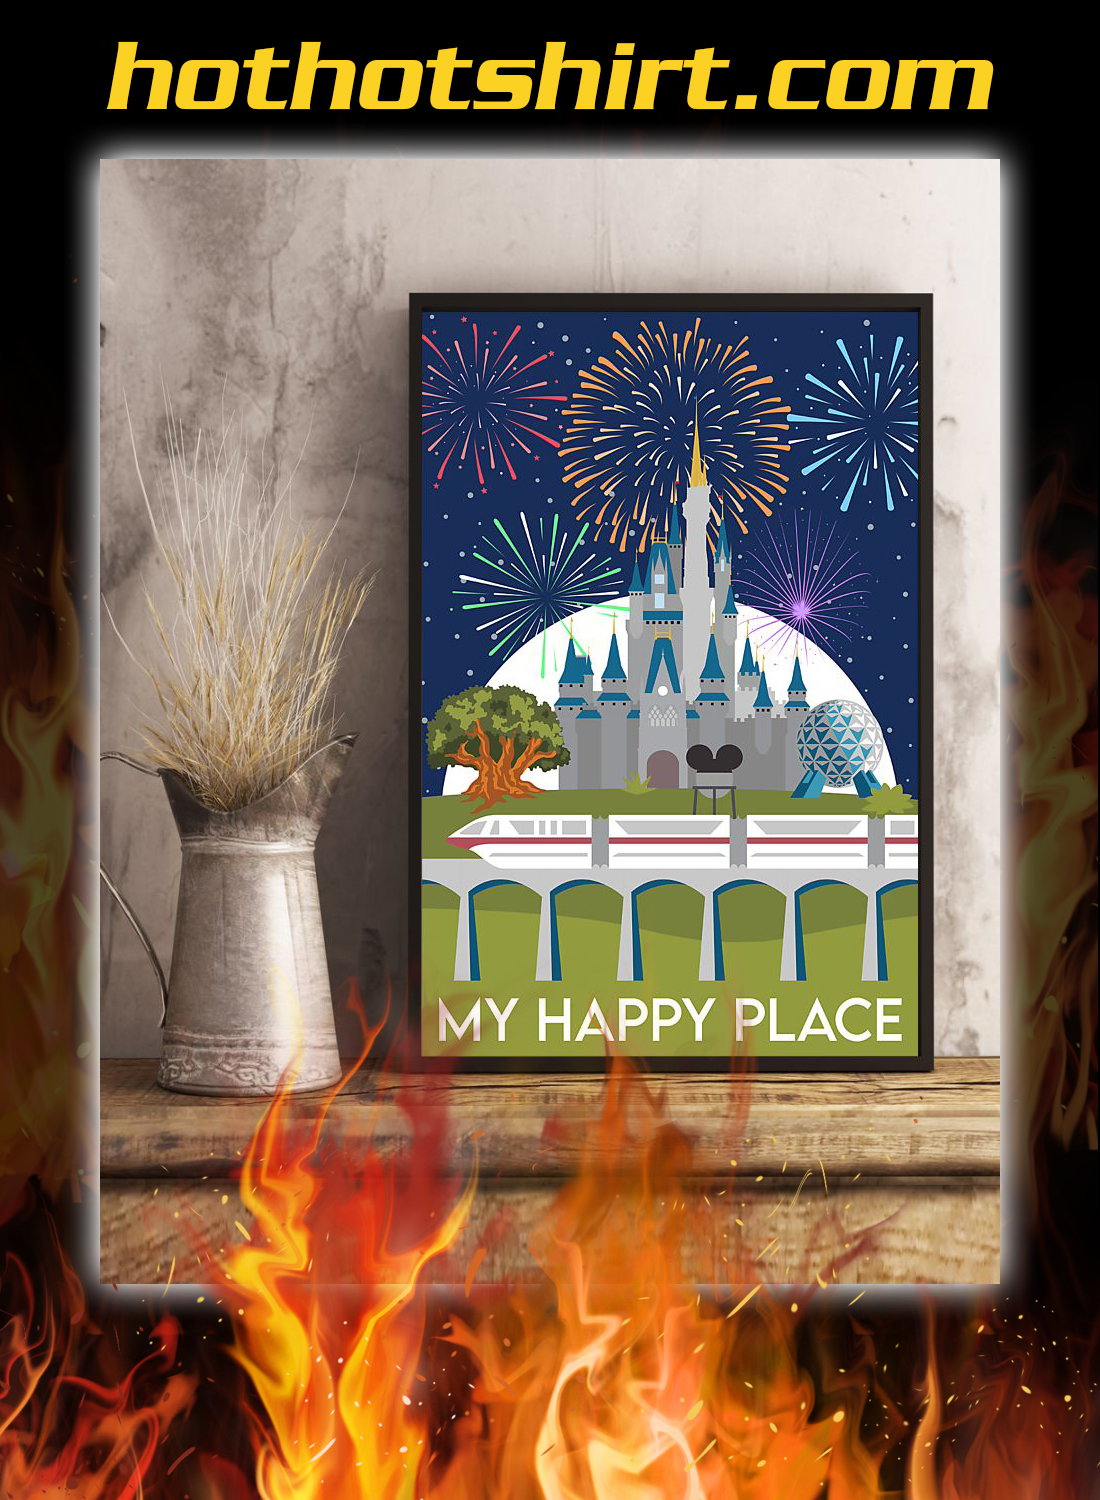 My happy place poster 3